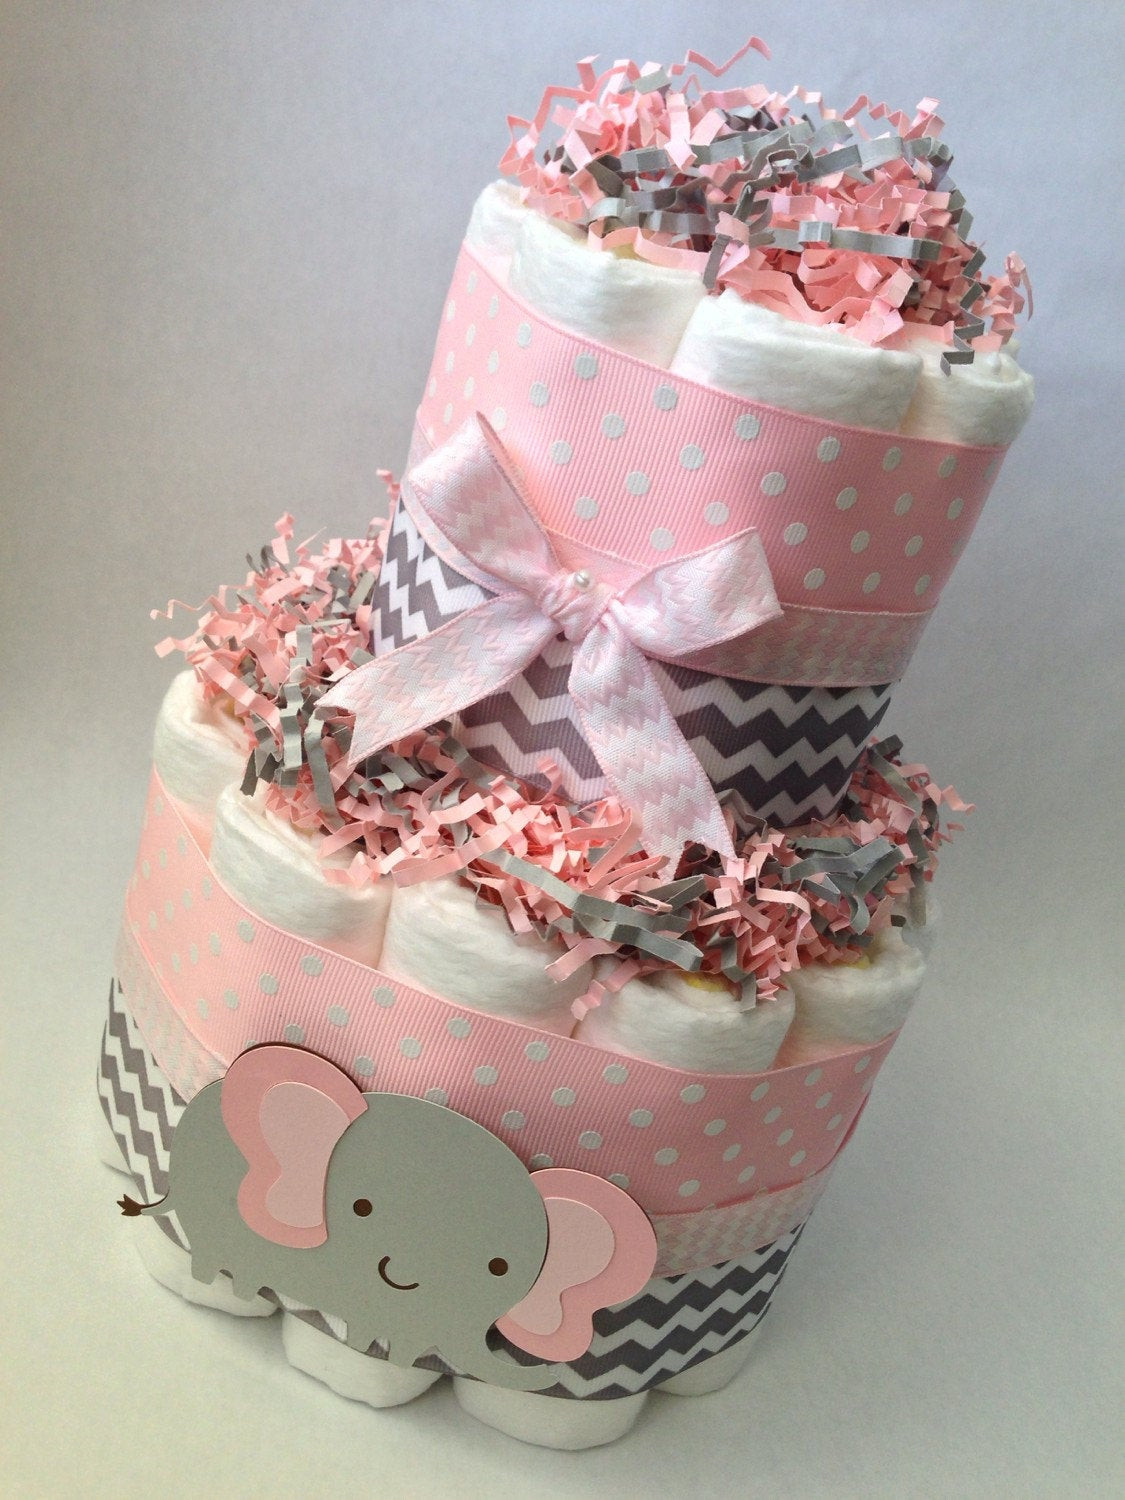 DIY Baby Shower Cakes  Pink and Grey Elephant Diaper Cake Baby Shower Centerpiece